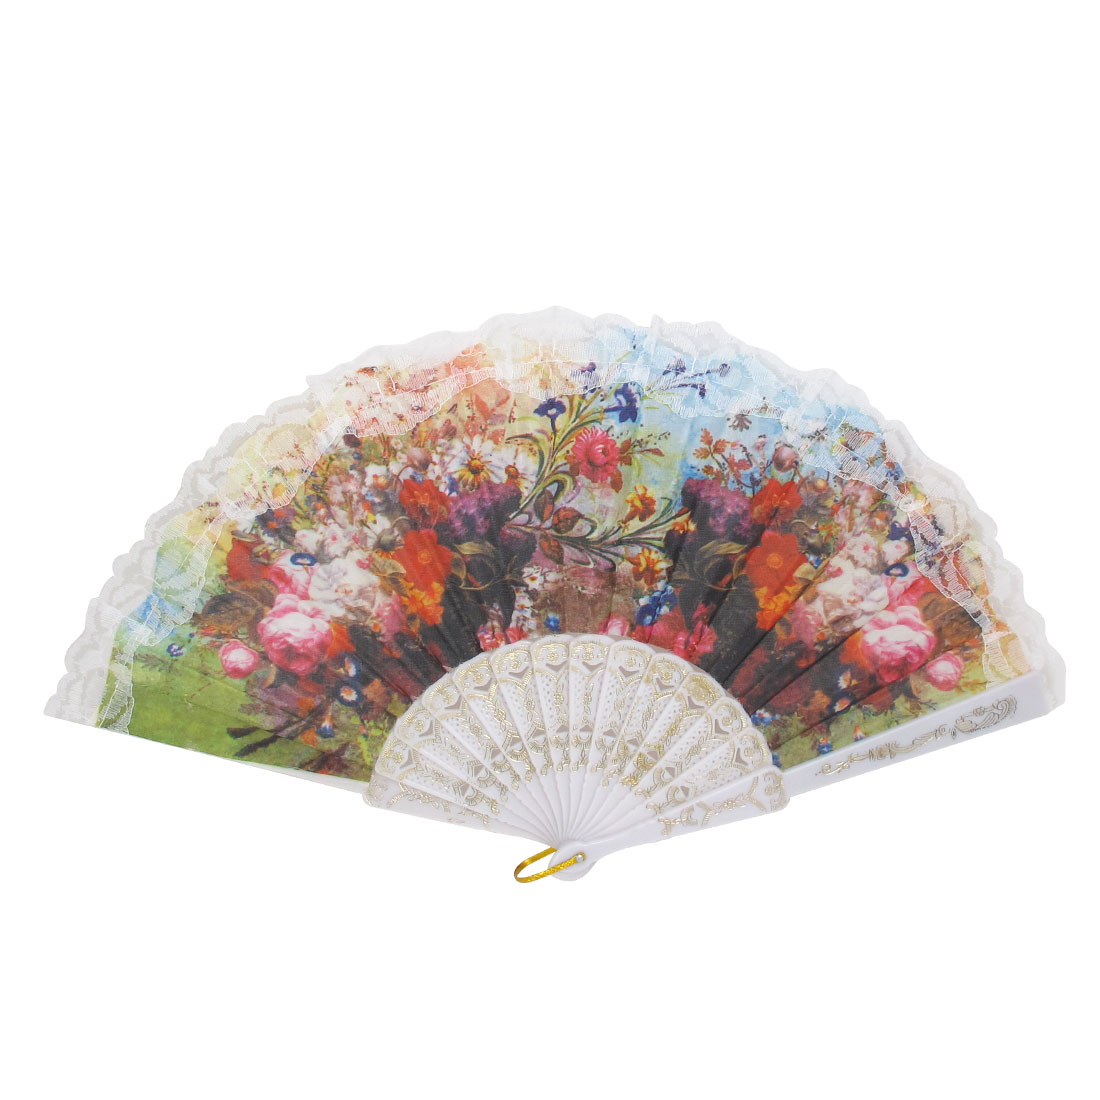 Wedding Party D Ring Decor Plastic Frame Floral Print Folding Hand Fan White